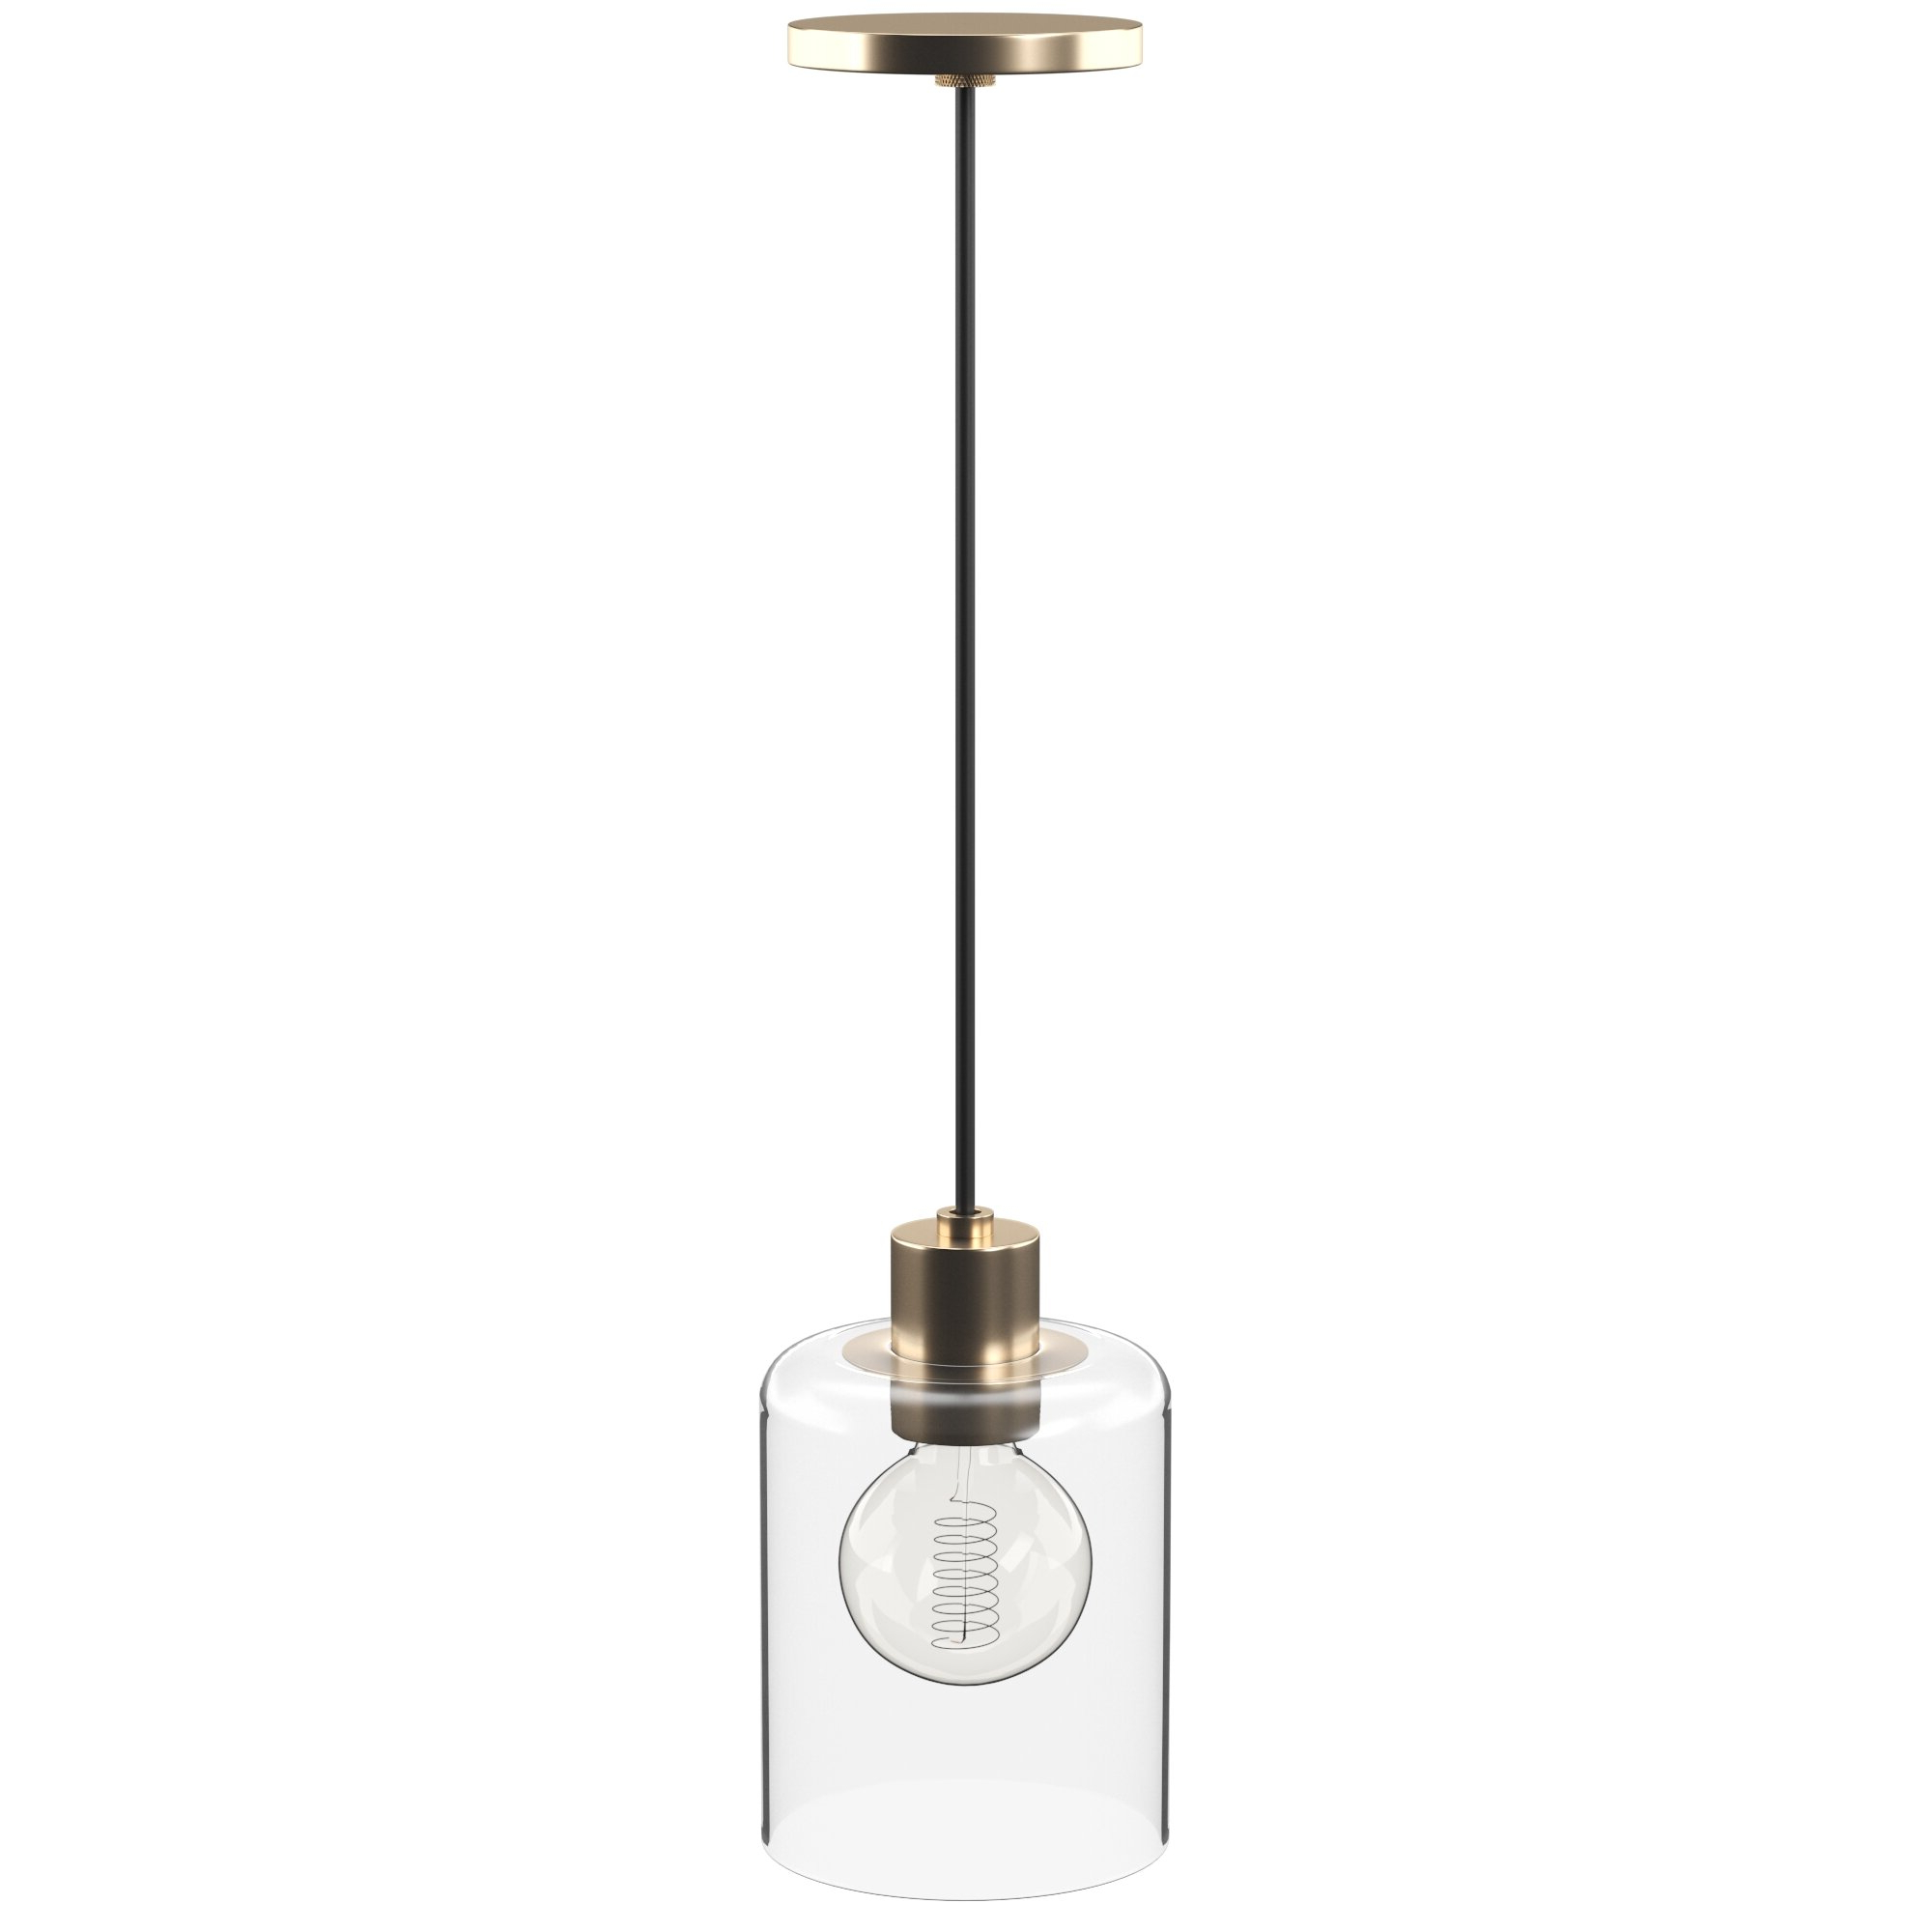 Bainbridge 1-Light Single Cylinder Pendants with Well-liked Damp Location Pendant Lighting